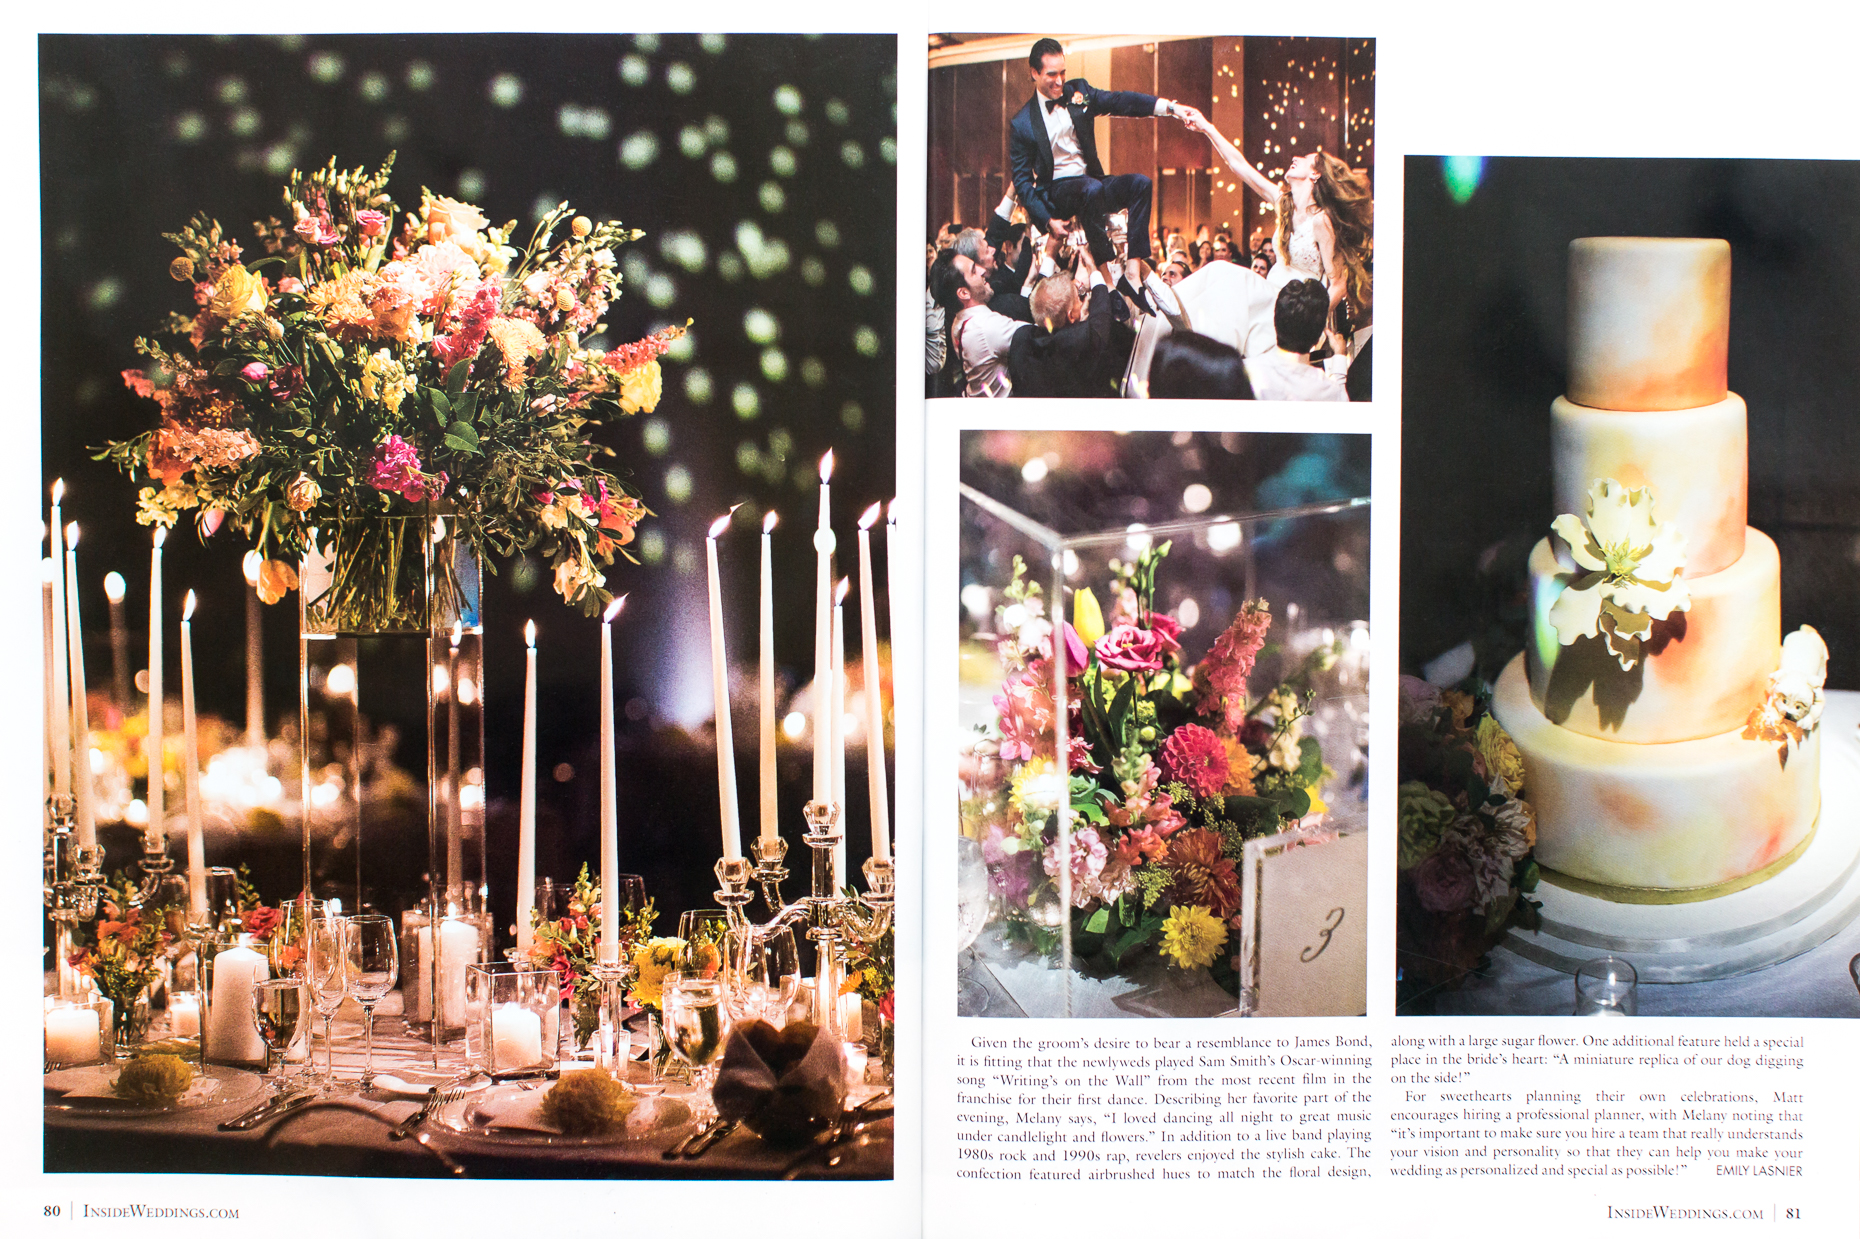 108_InsideWeddings_spread5_spring2017